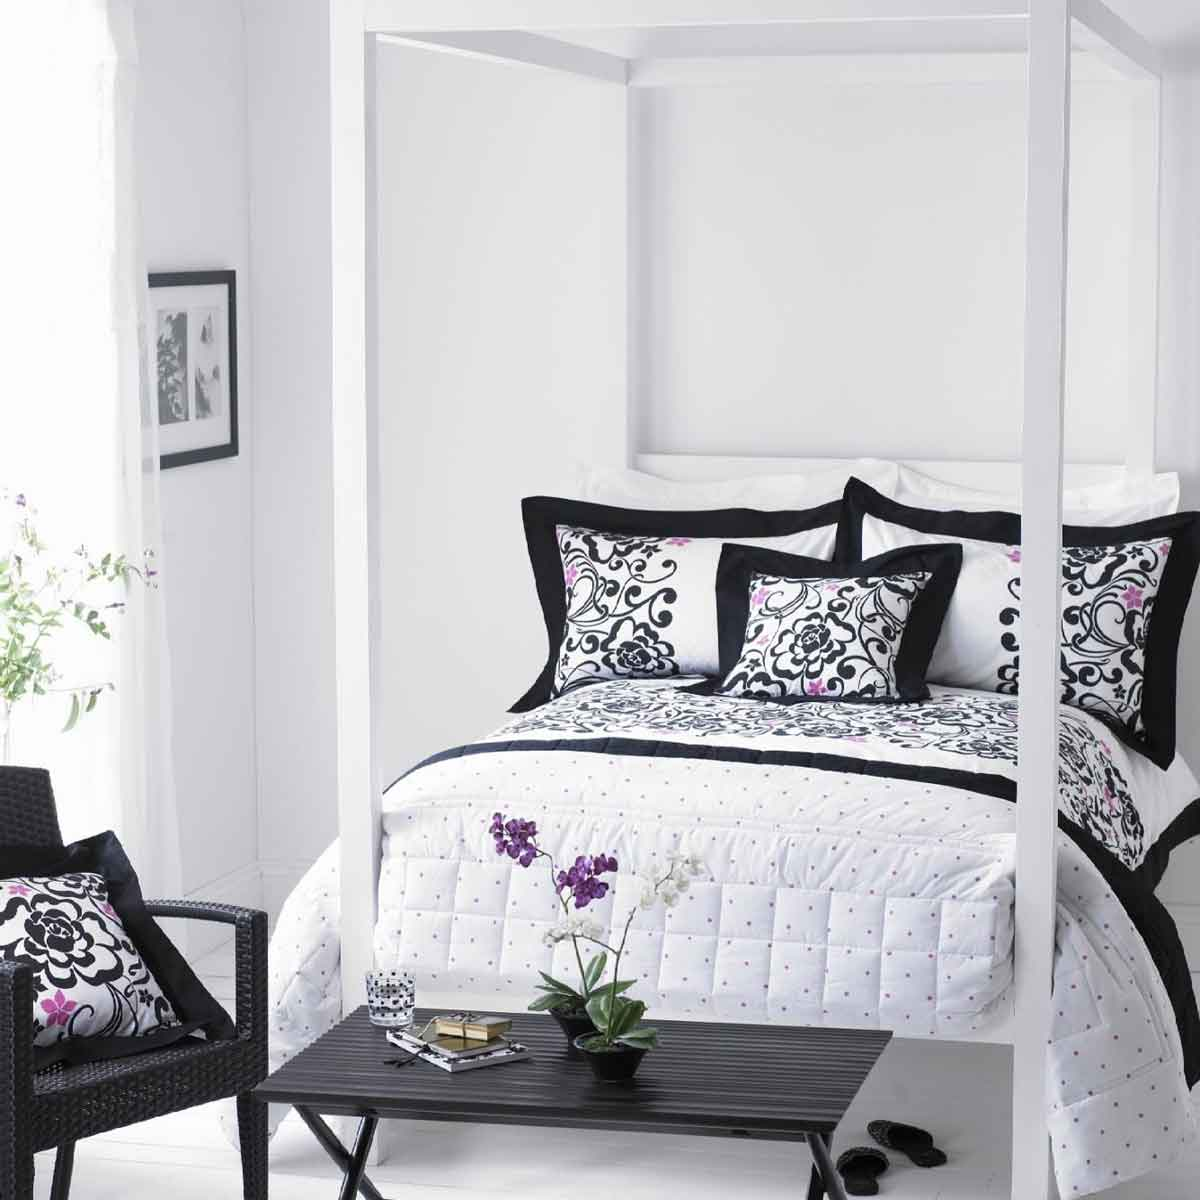 Black and white bedrooms designs home design inside Black and white room decor